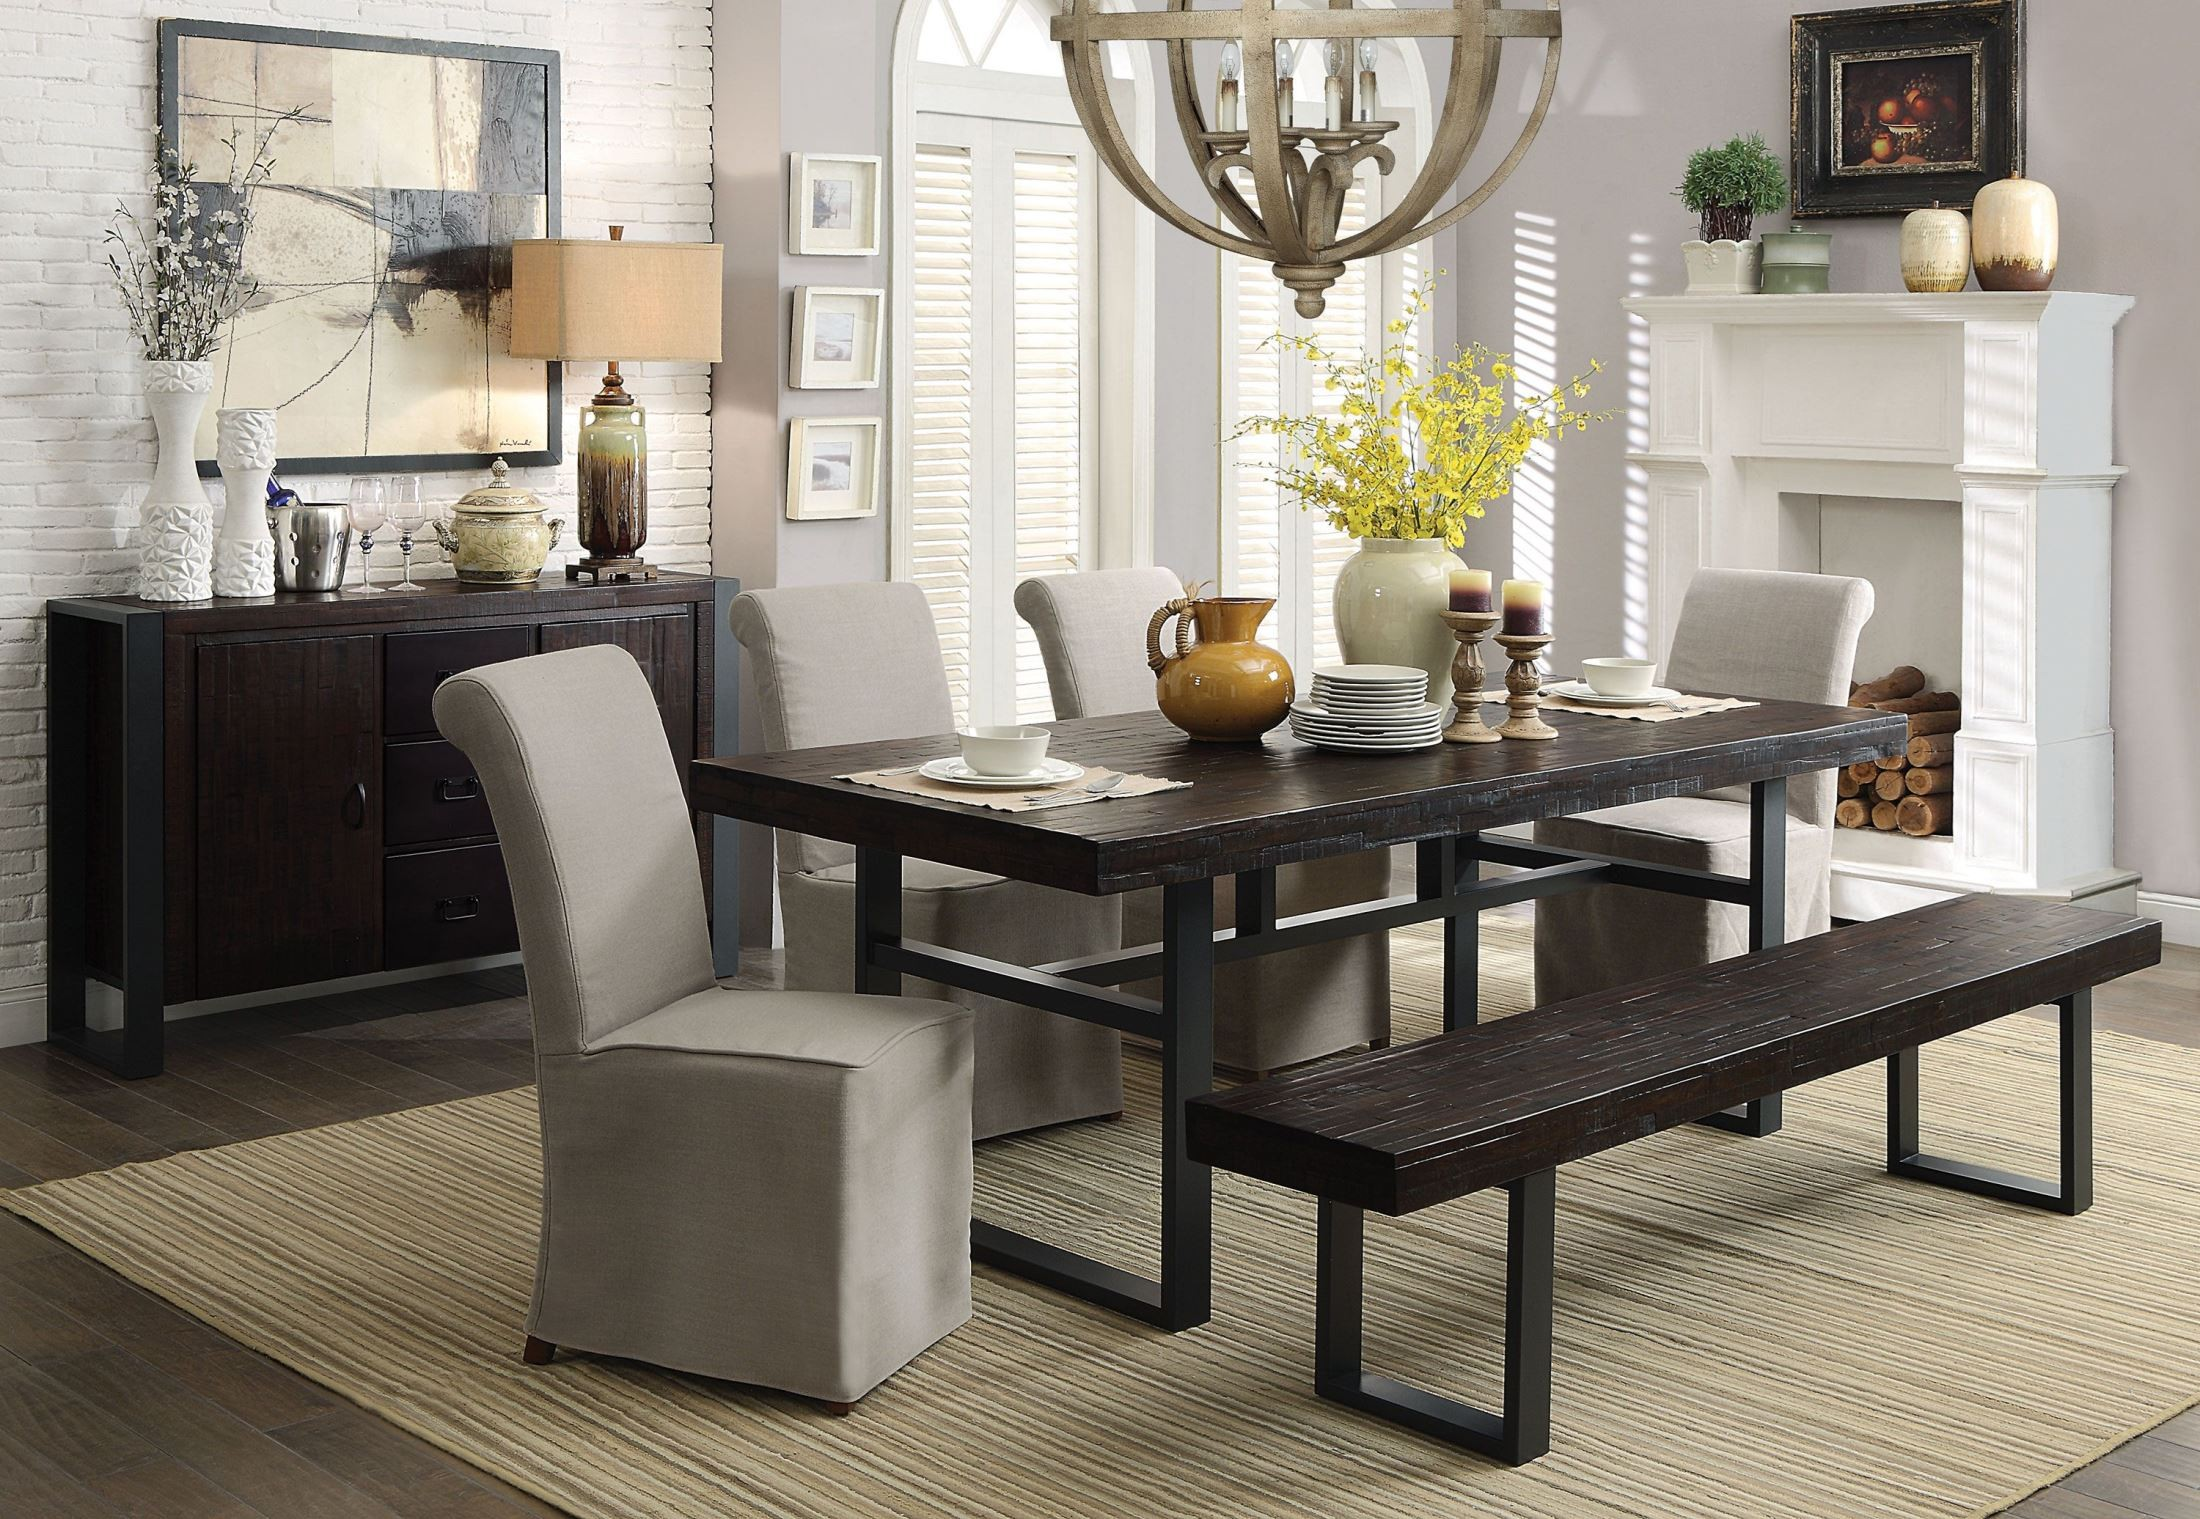 keller reclaimed wood dining room set 106941 coaster reclaimed wood dining set eclectic dining sets los